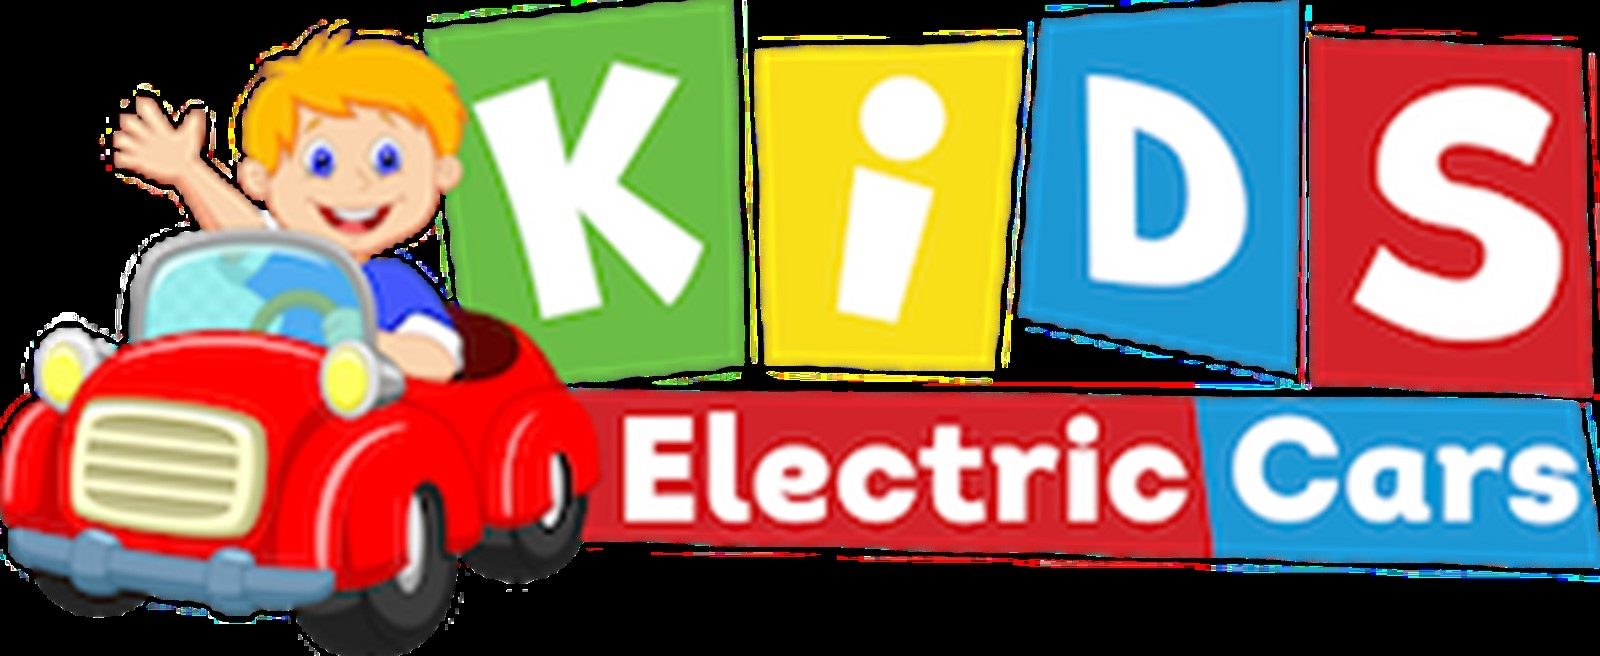 Kids Electric Cars (@kidselectriccars1) Cover Image